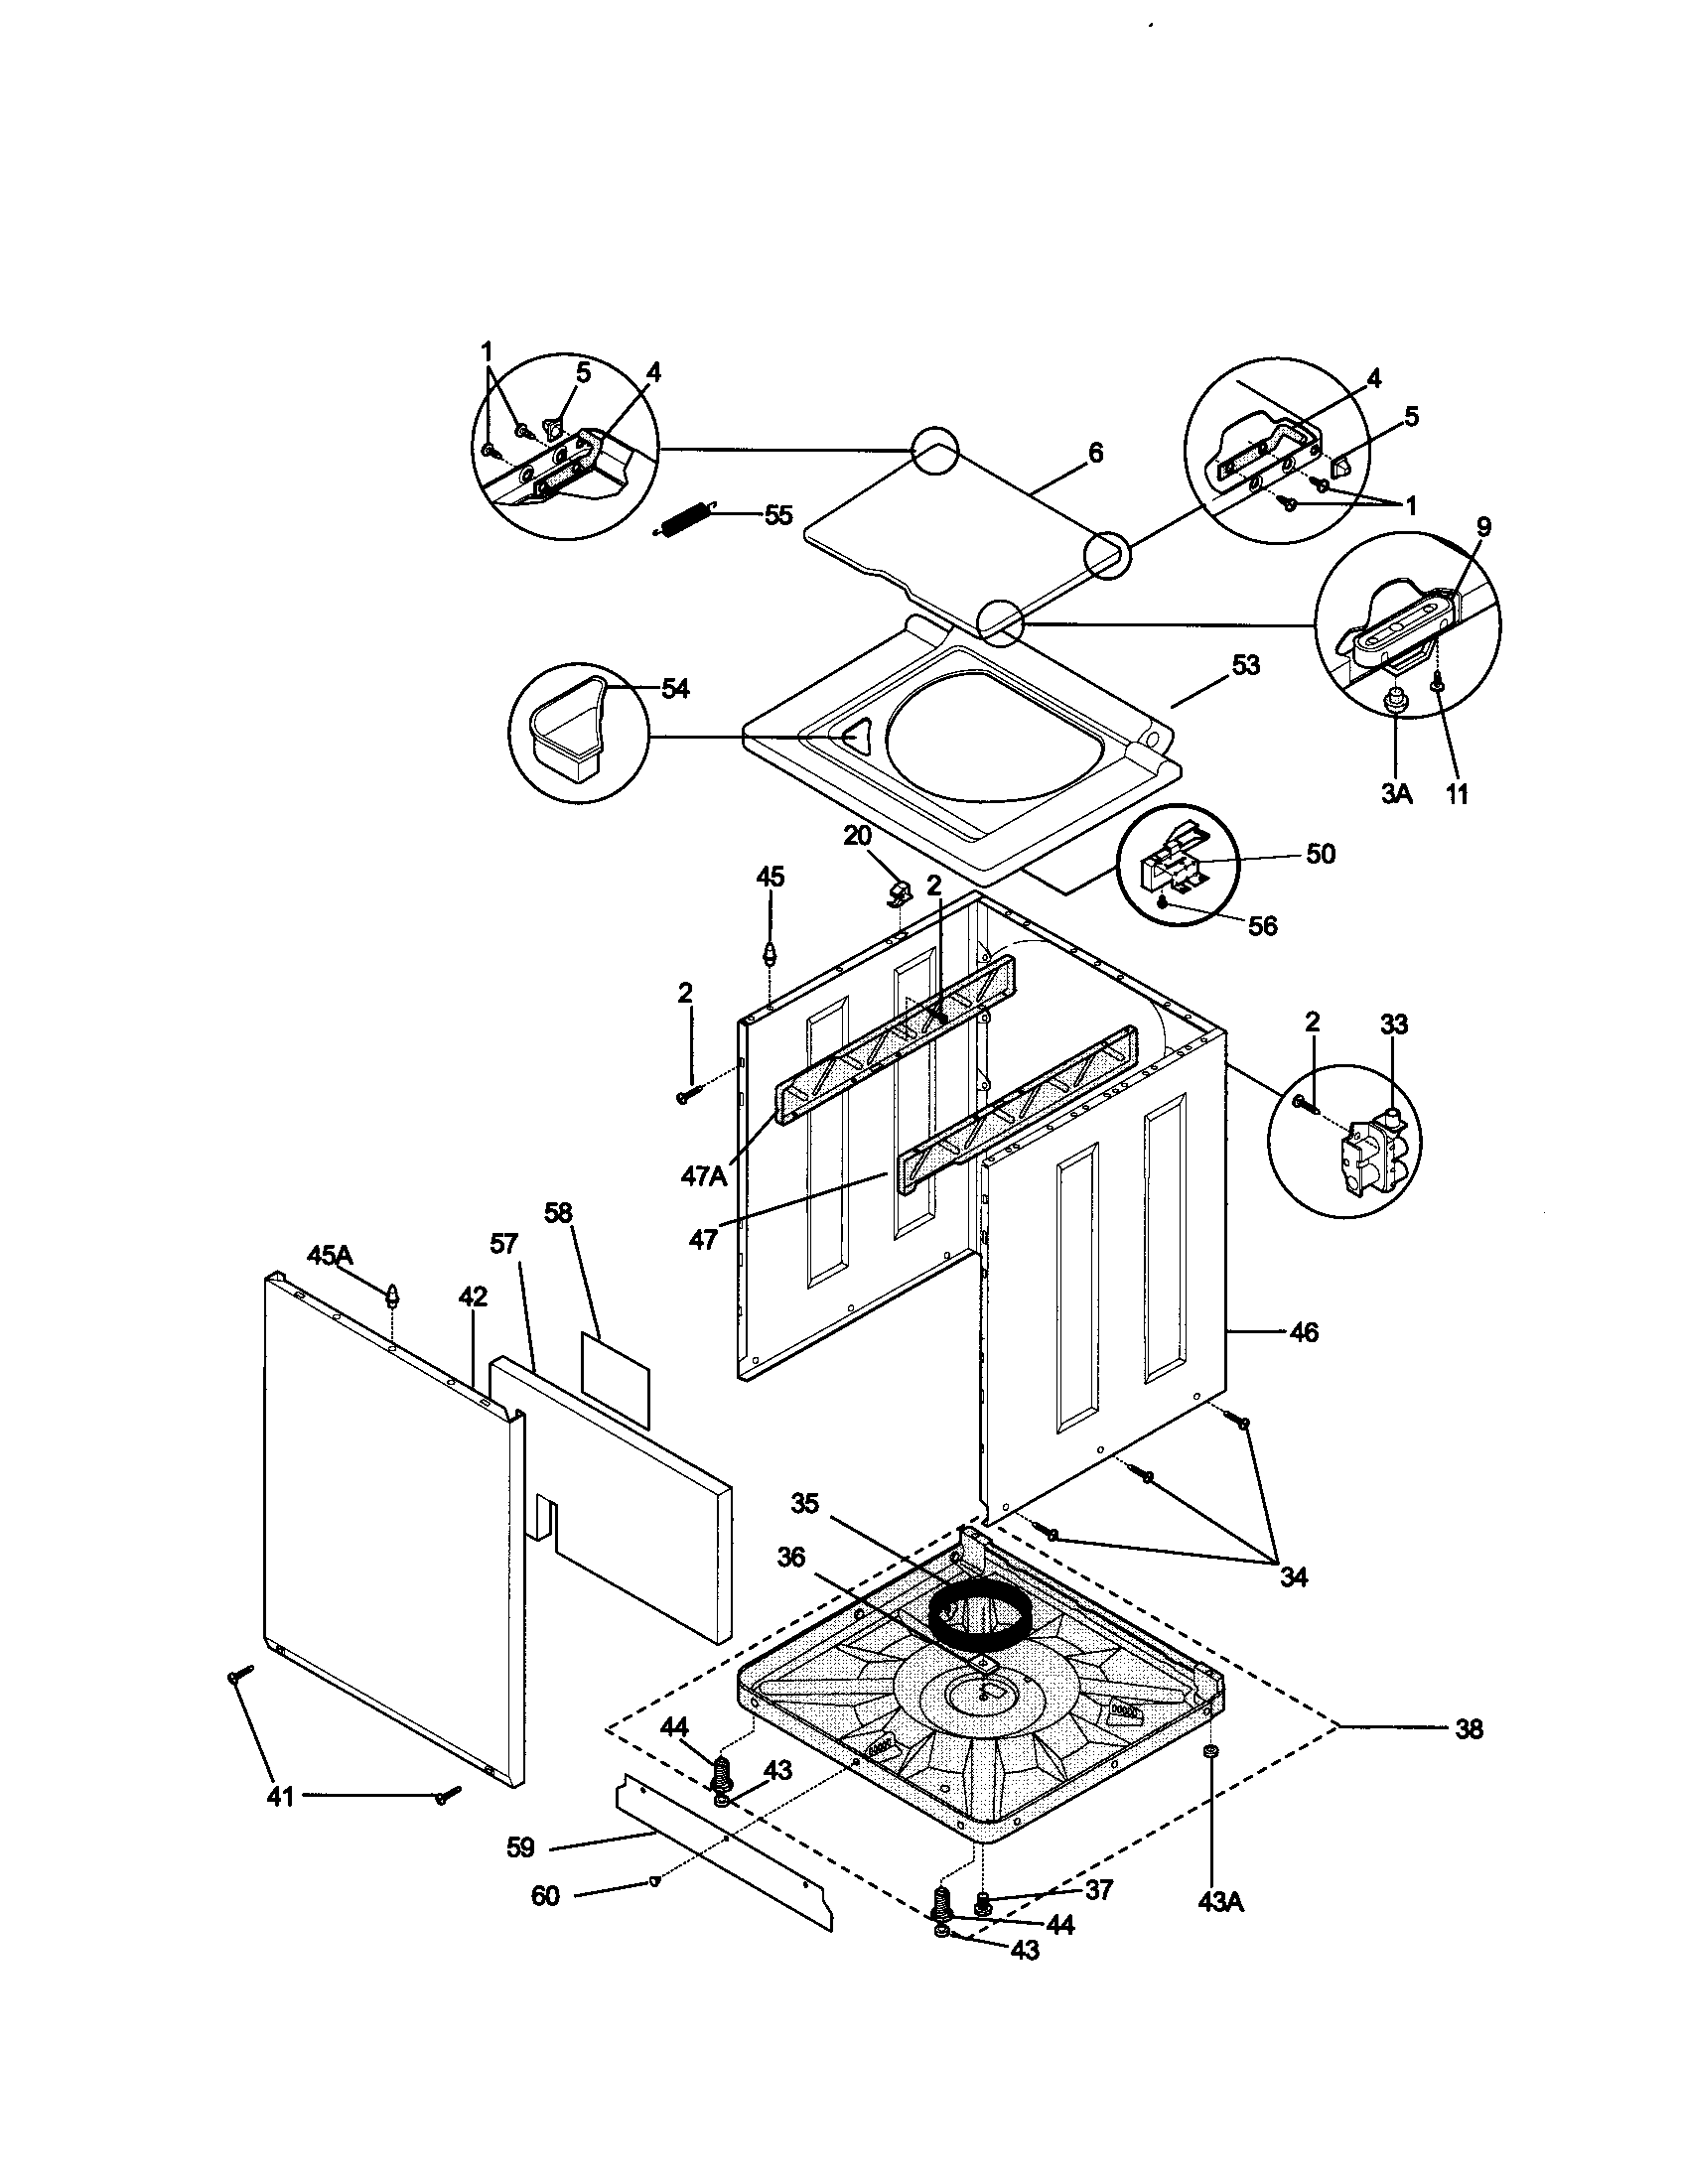 CABINET Diagram & Parts List for Model 41790812990 Kenmore